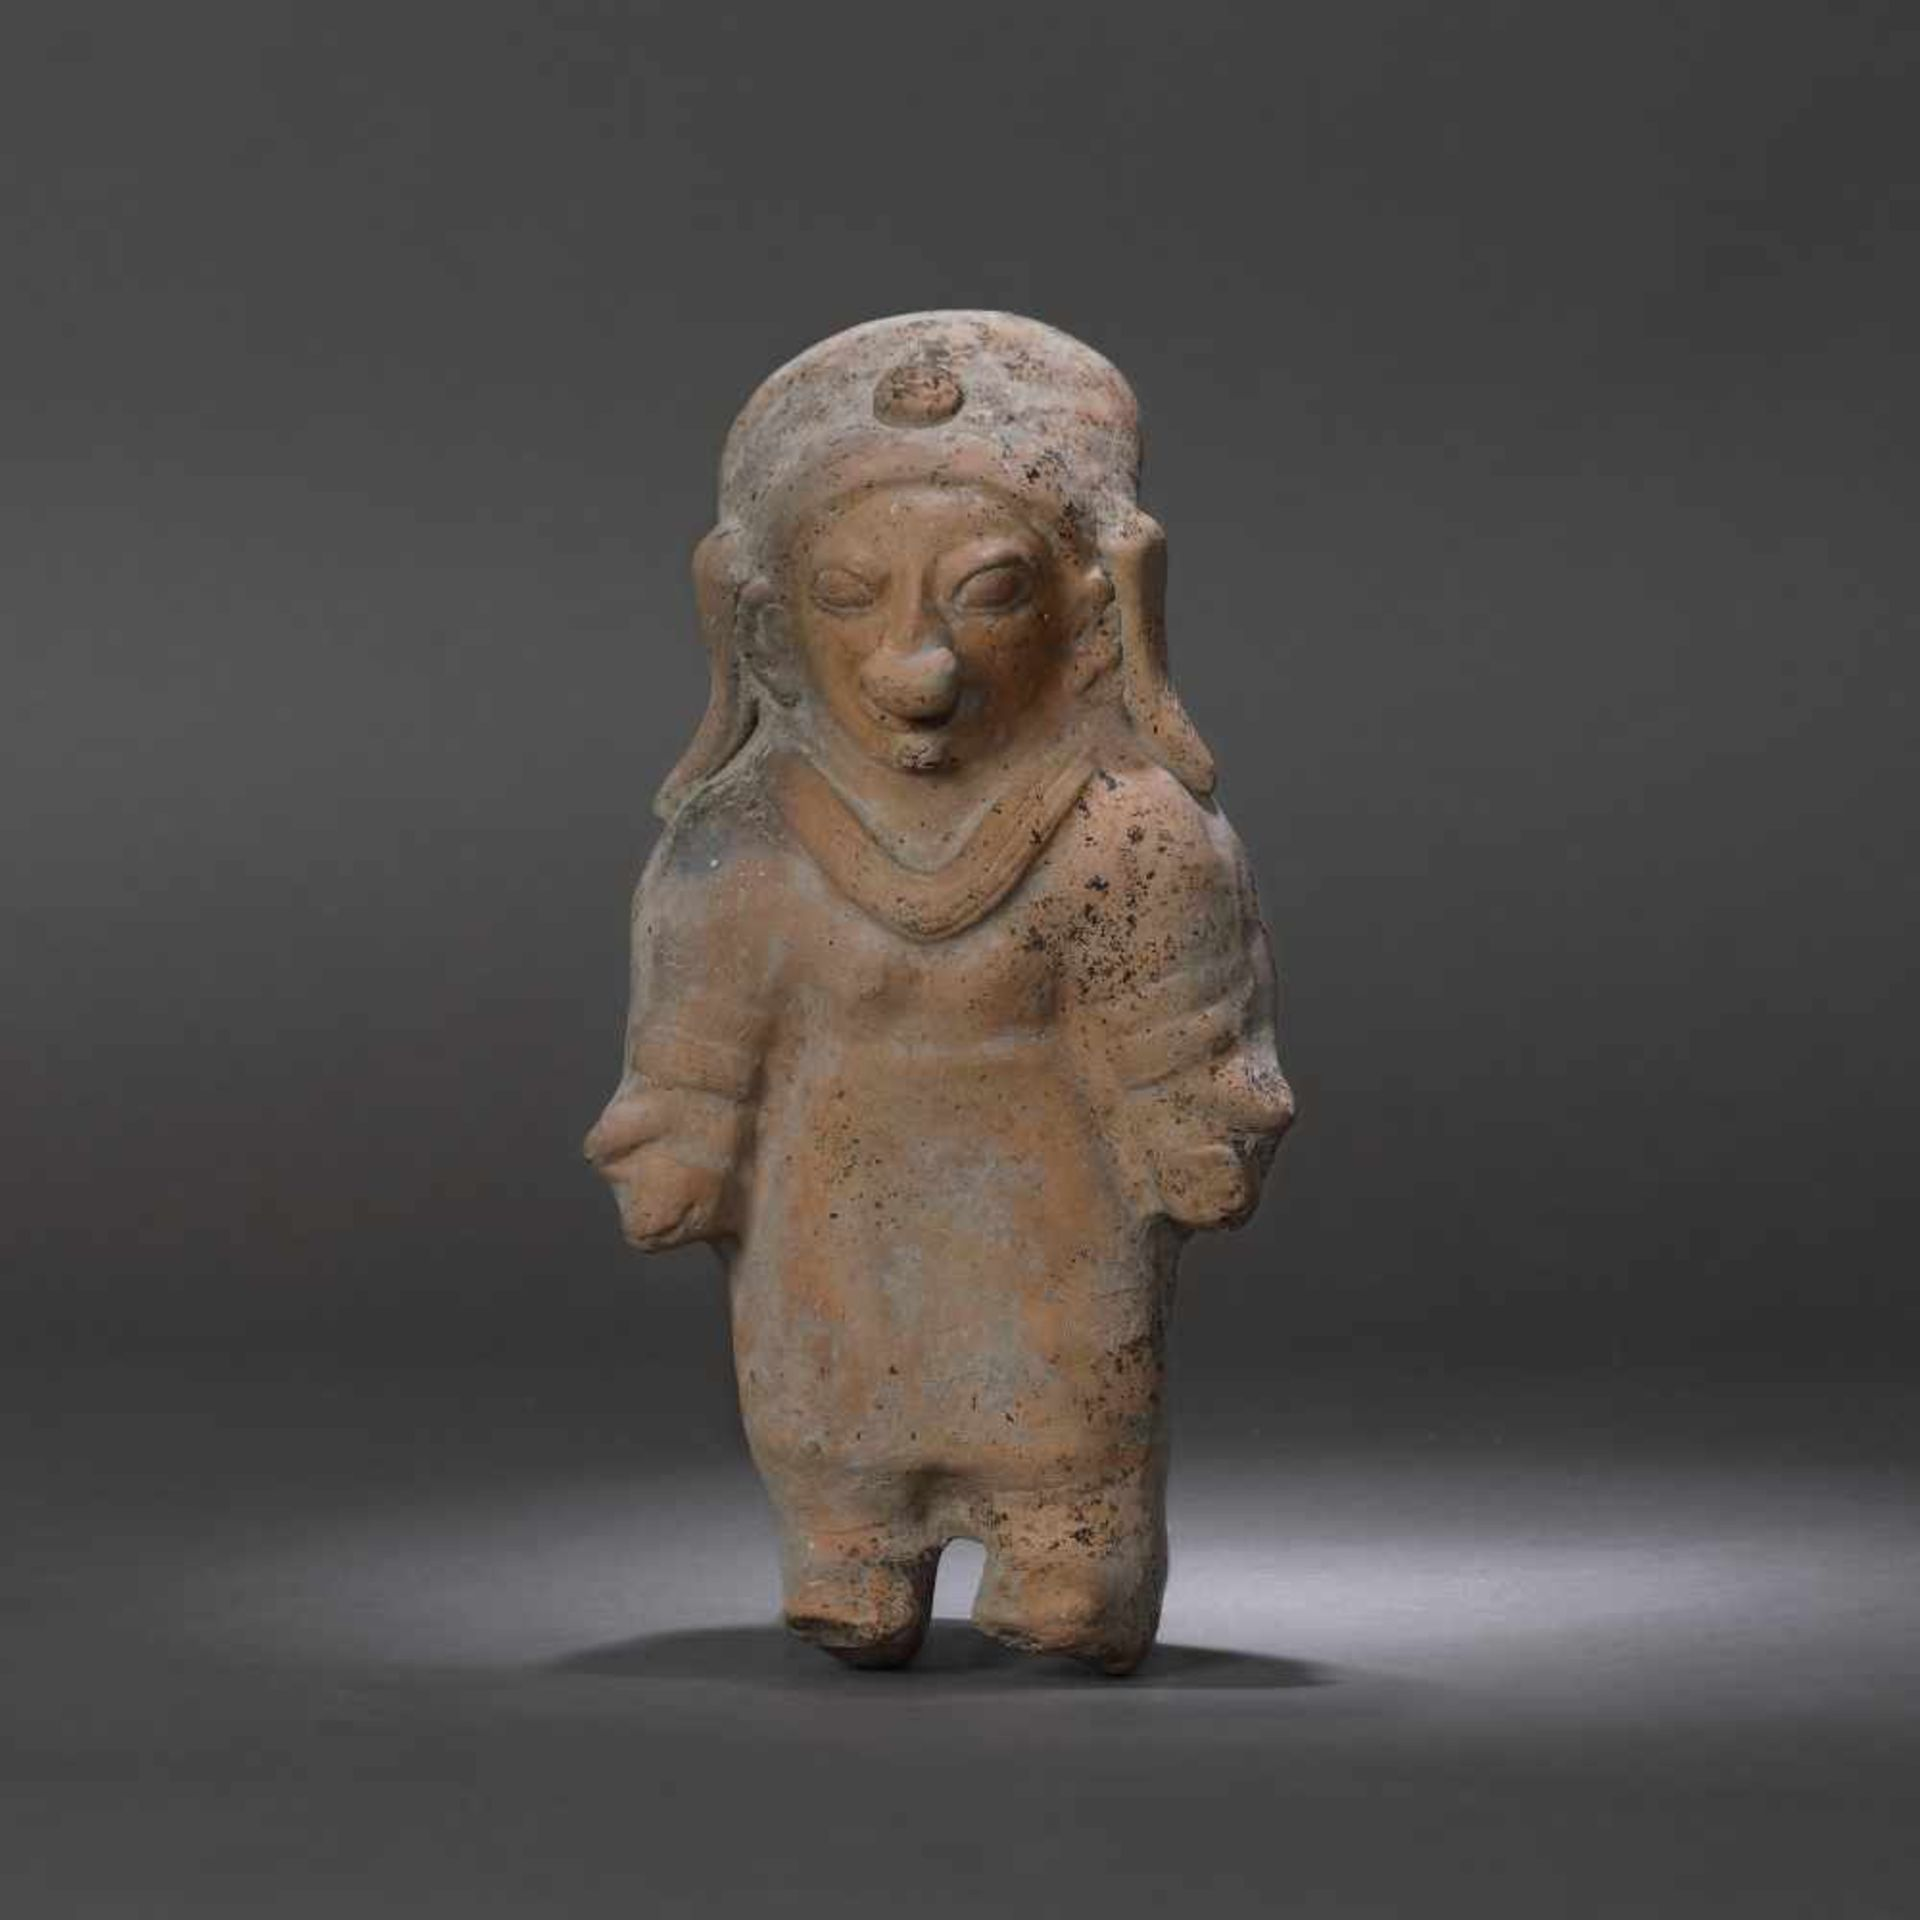 Terracotta statuette, depicting a female figure, Jama Coaque culture, Ecuador, approx. 1,700 years o